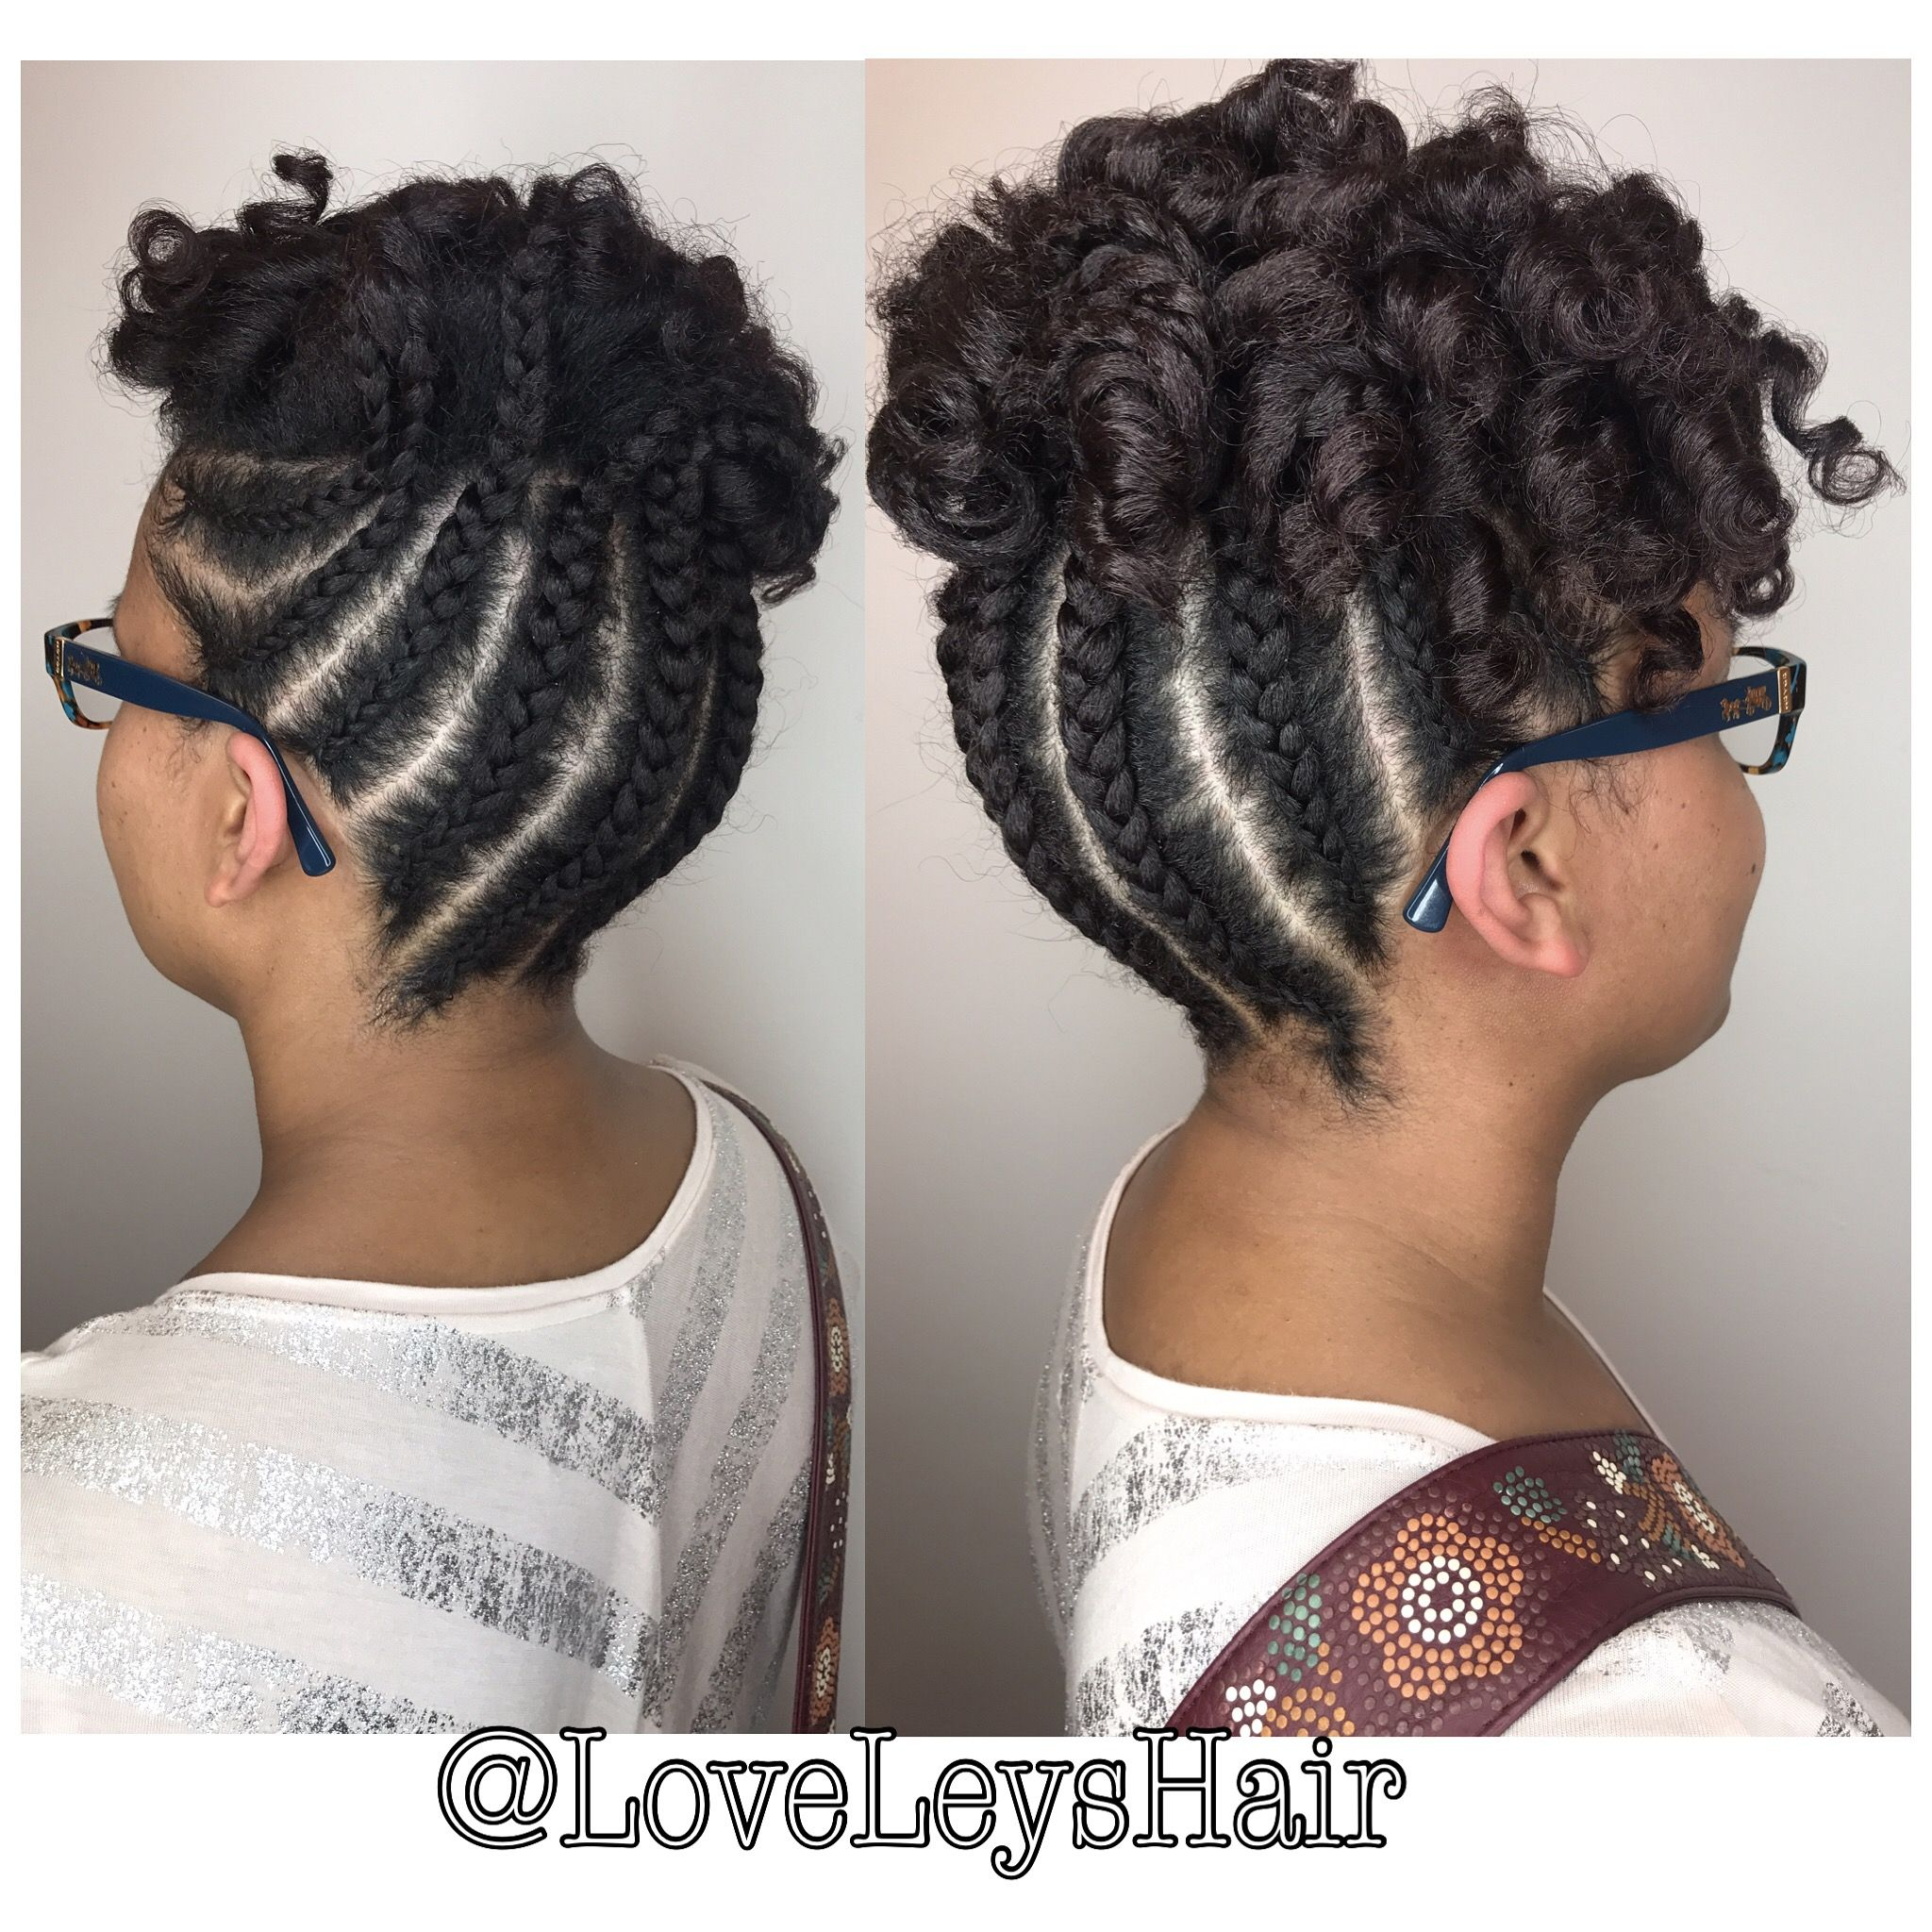 4c Hairstyle Braids Cornrows With Flexi Rod Set Natural Hair